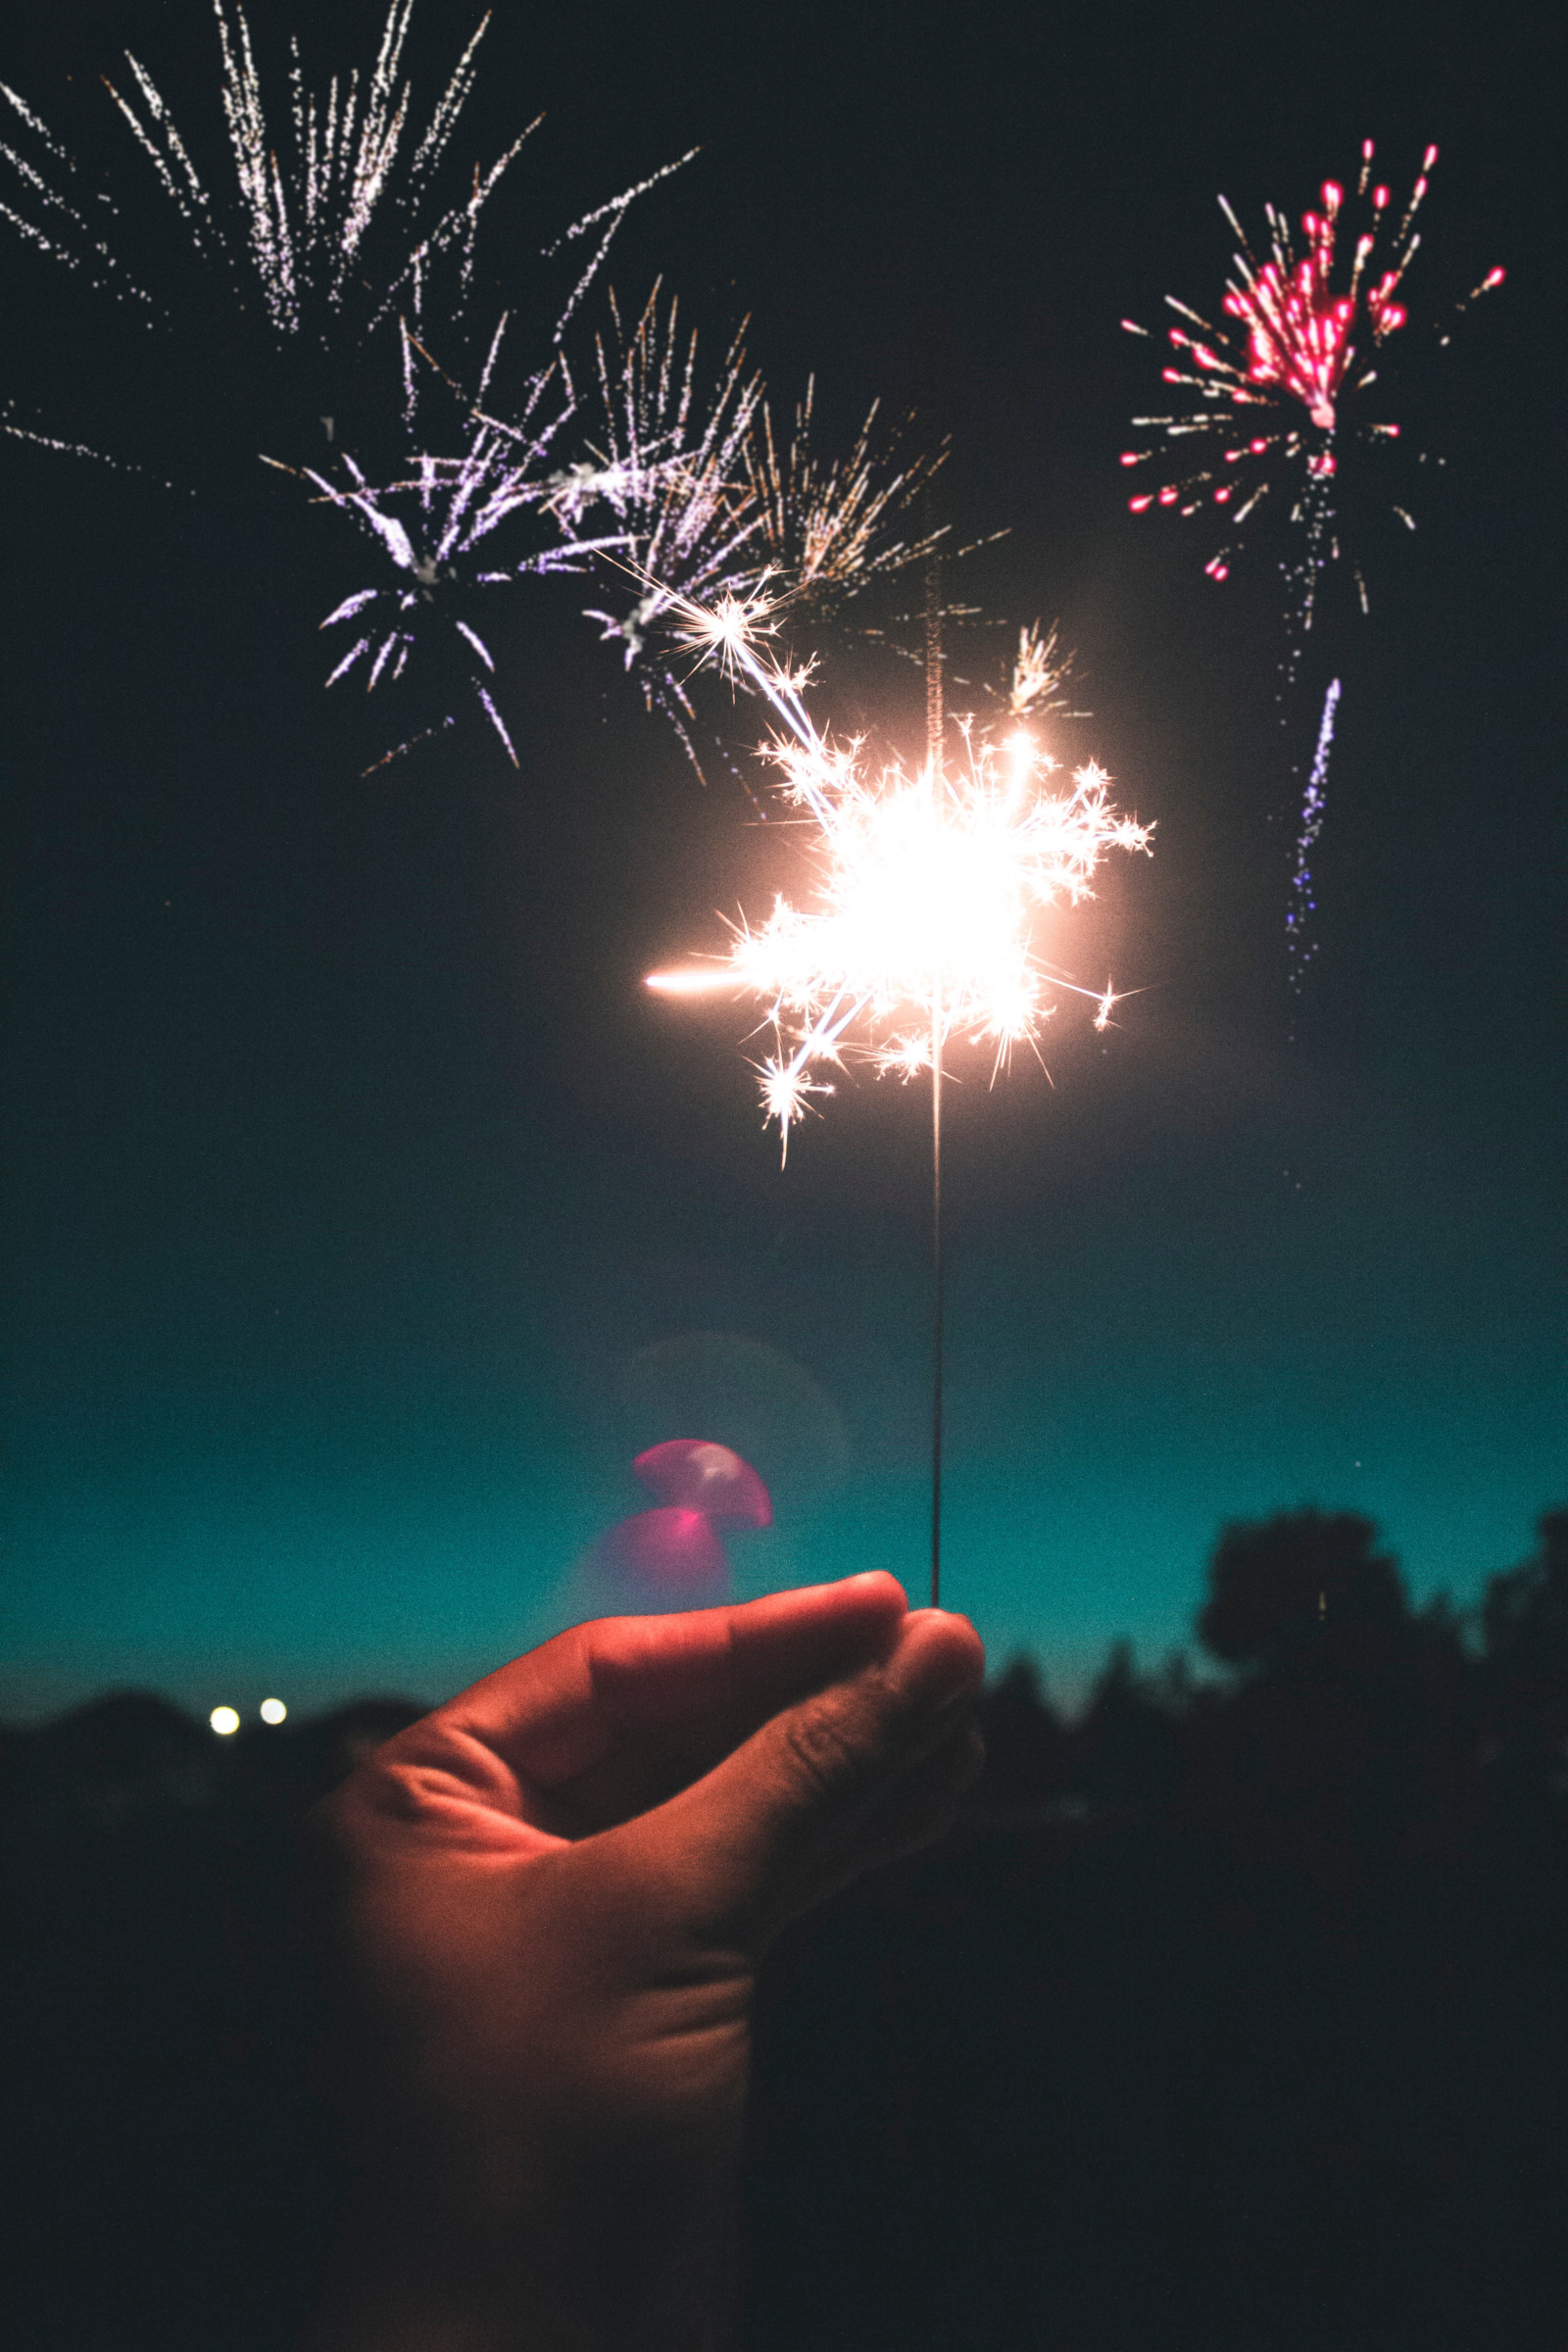 Download Free Photos Fireworks Sky Sparkler